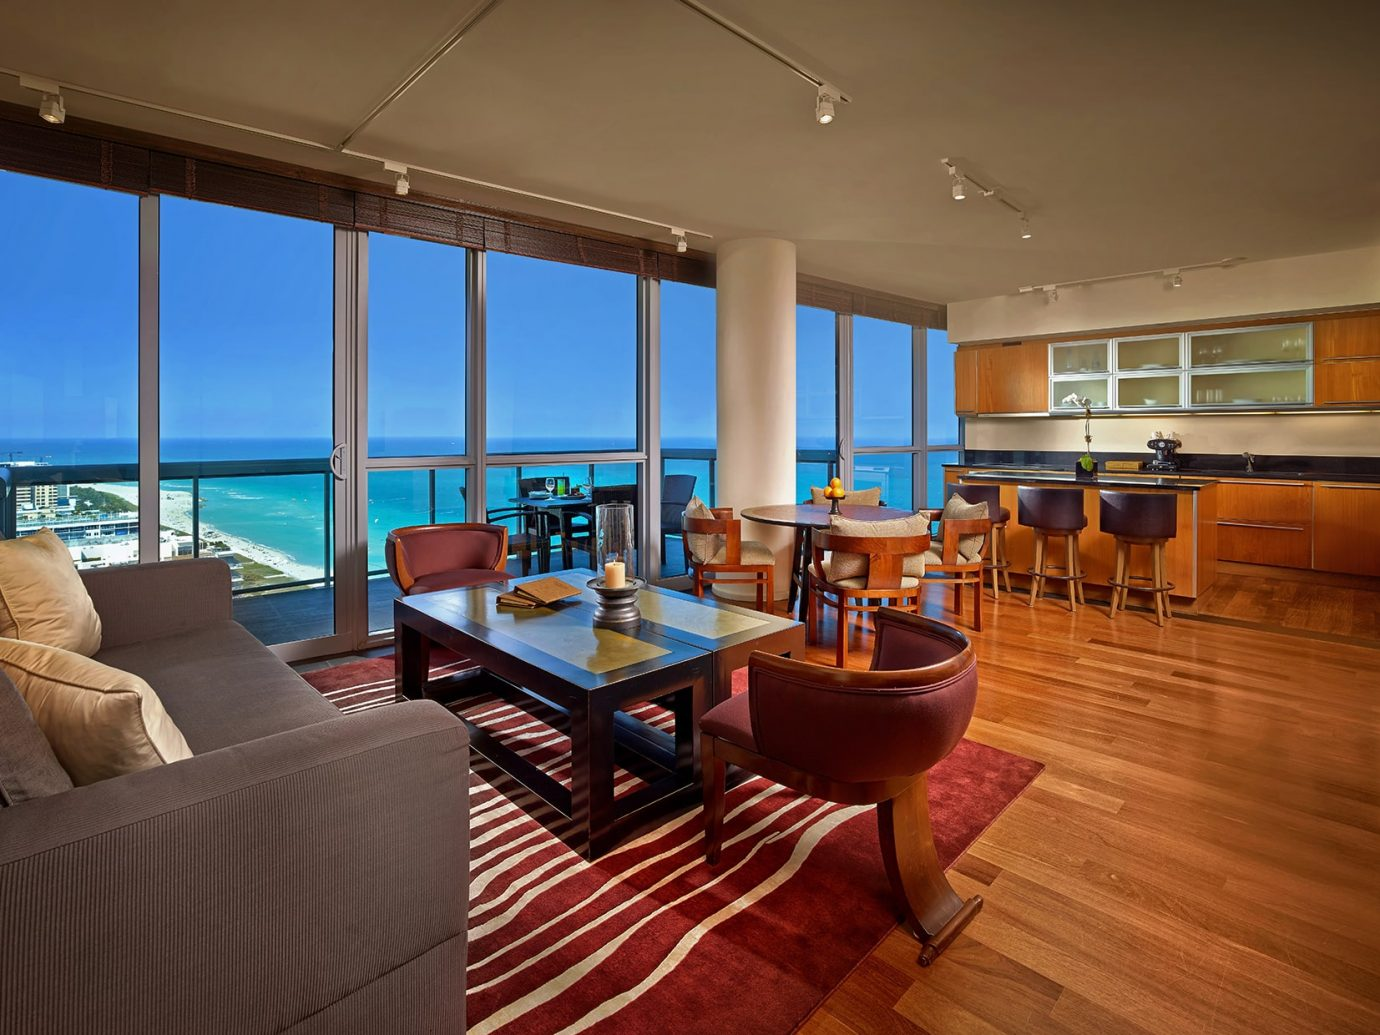 Living room and beach view at the Setai Miami Beach